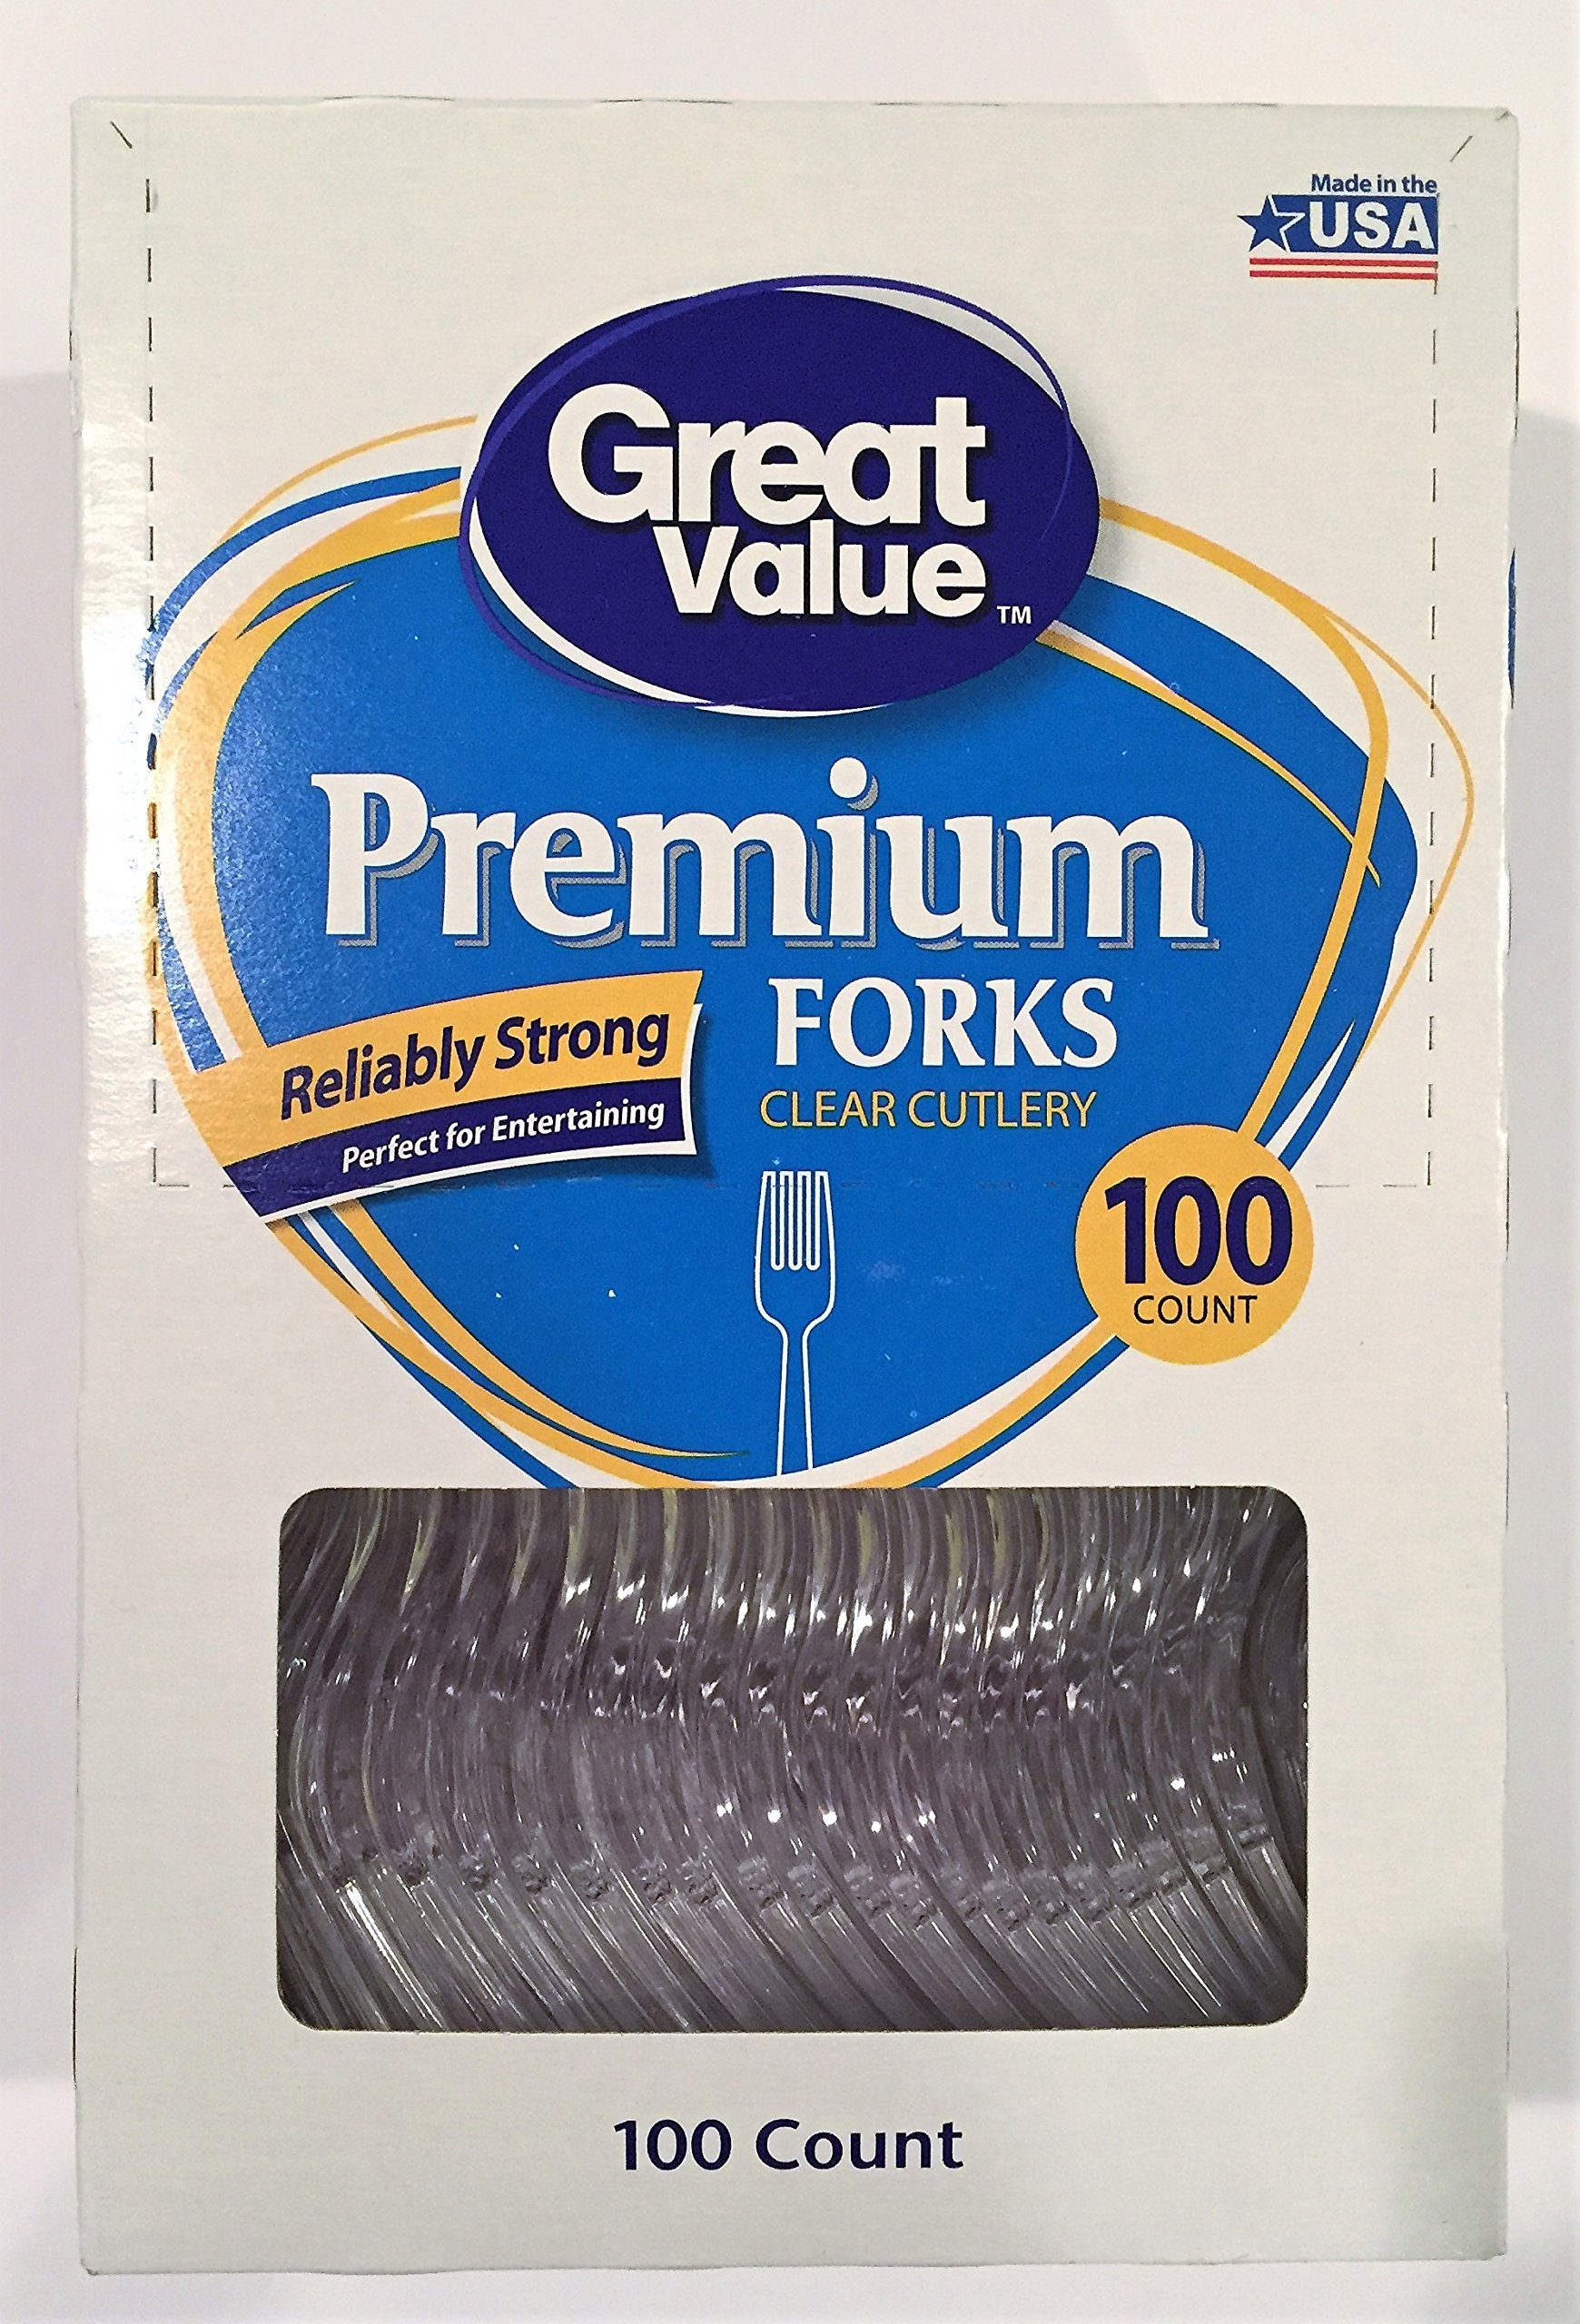 Great Value Pack Premium Disposable Plastic Forks, 100ct (1)